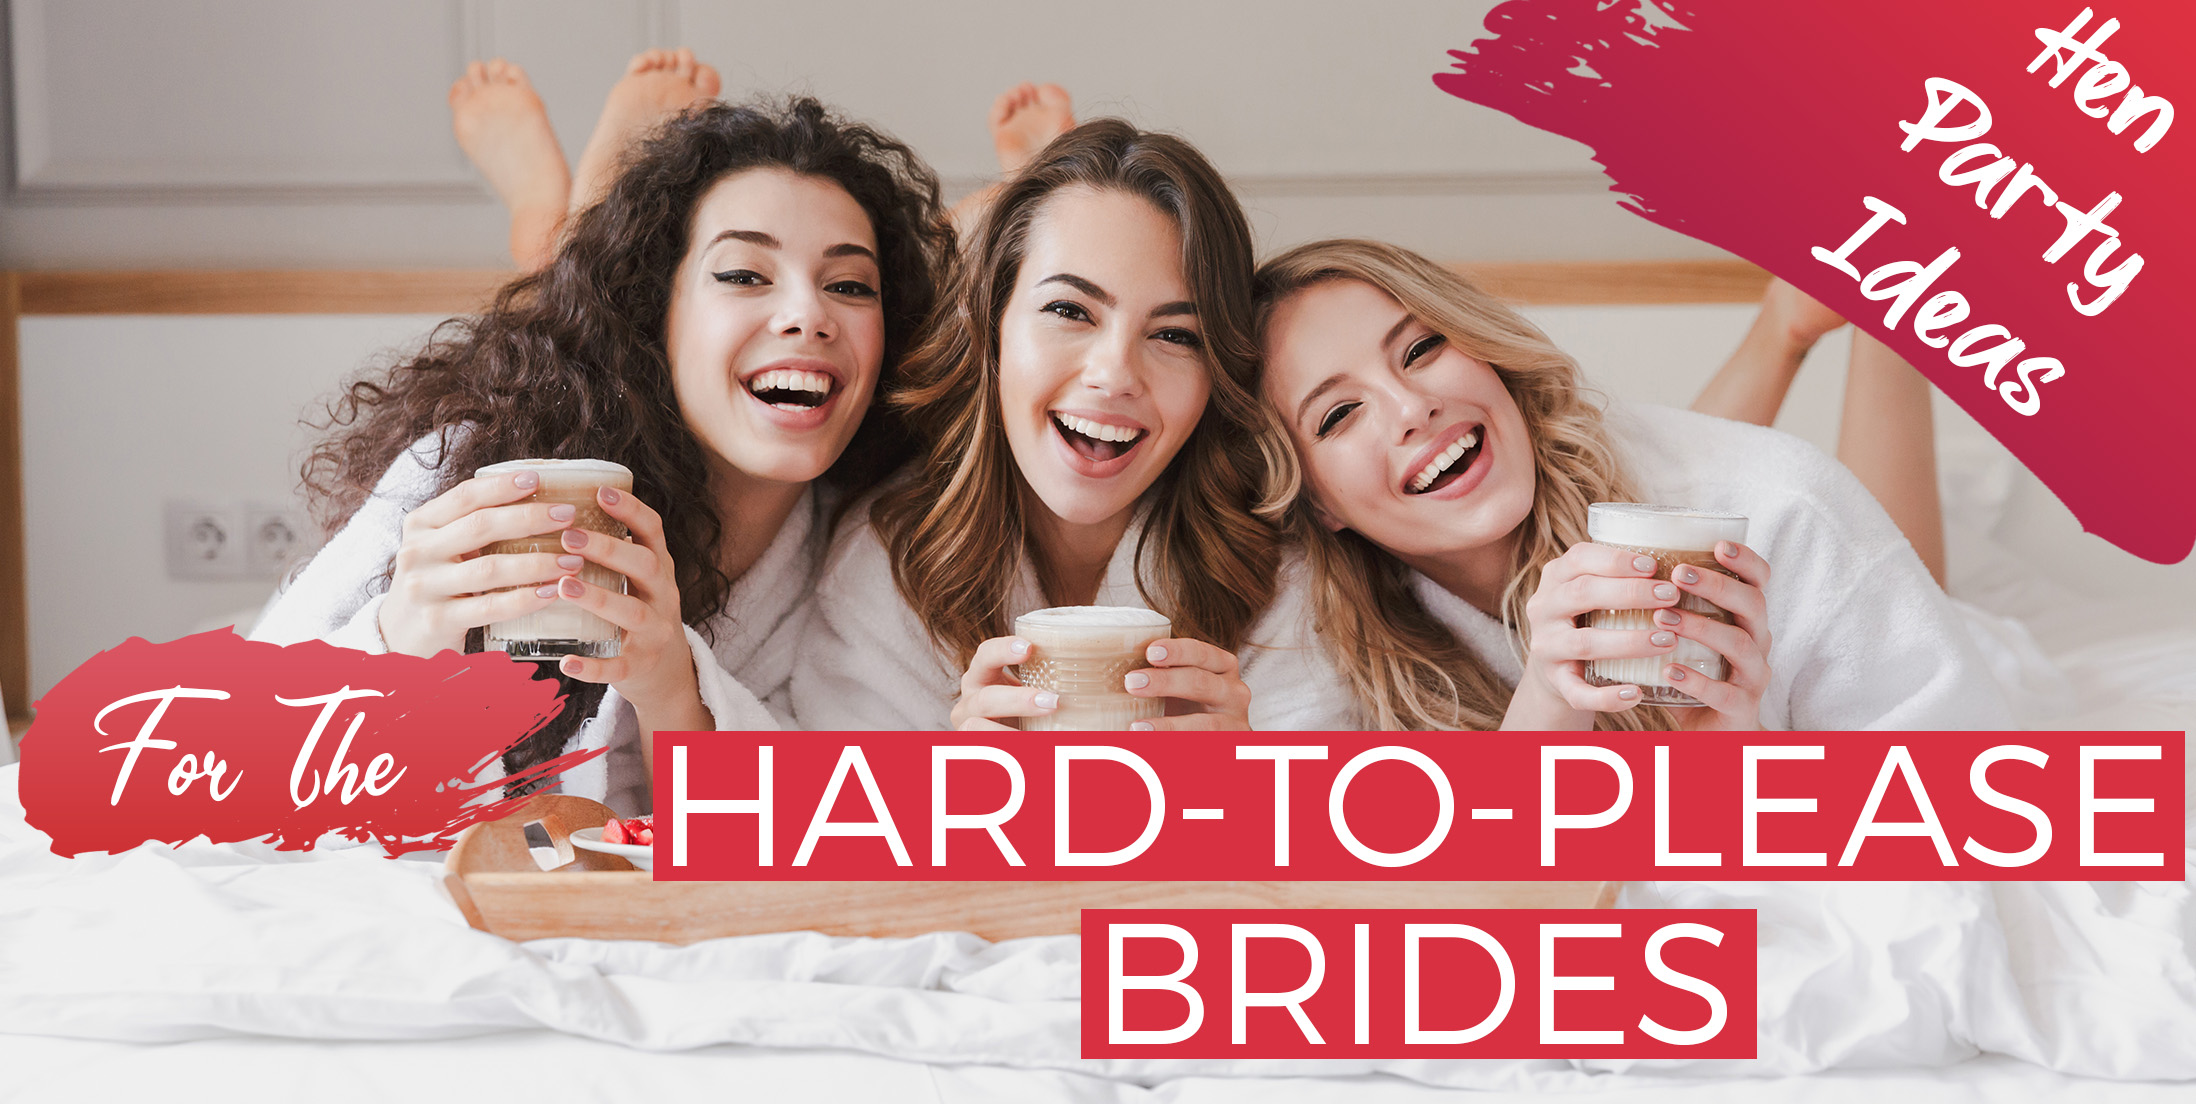 Hen Party Ideas for the Hard to Please Brides